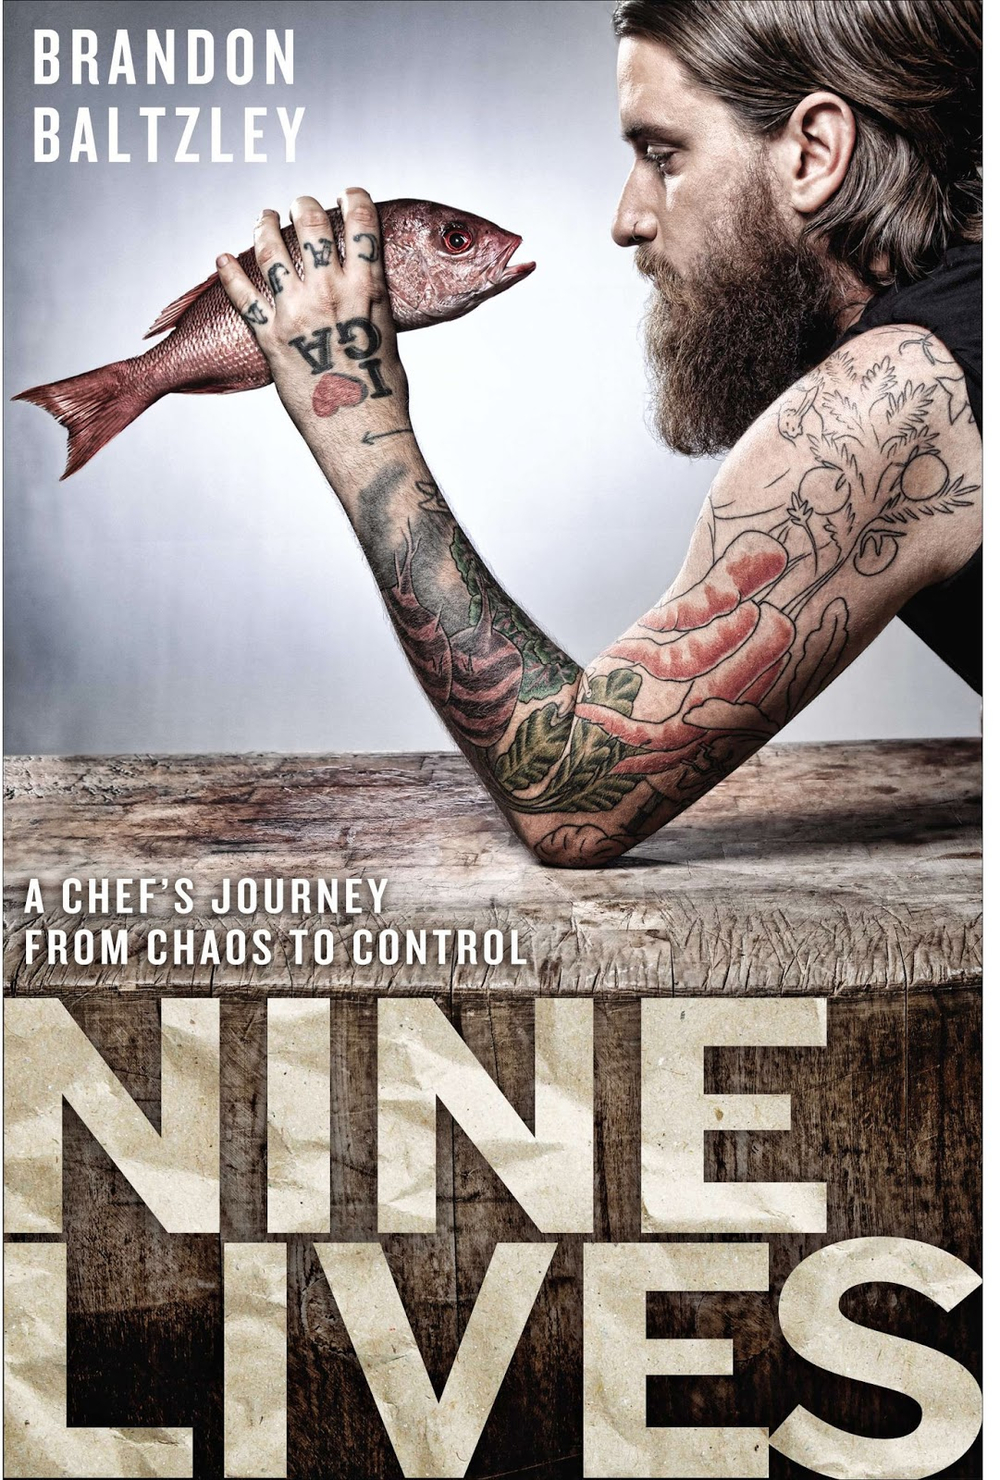 Head to Atlanta on May 23 for a special dinner at Empire State South with Chef Brandon Baltzley, author of the new book  Nine Lives: A Chef's Journey from Chaos to Control.     Thursday, May 23  6:30pm  $130 per guest, includes one signed copy of Nine Lives (tax and gratuity not included)  at Empire State South  999 Peachtree Street Atlanta, GA  Call for reservations at 404-541-1105 or email at empirestatesouth@gmail.com     Baltzley's memoir tells his story of a love for cooking that began at age nine, his impressive success at a young age, and of his constant battle with destructive addiction.     This is a story that hits close to home for many of those who live and work in food culture - whether it be because of a friend we have known, a co-worker we have lost, or maybe just through similar stories we have heard far too many times.    Fortunately, Baltzley's story has a happy ending, and our friends at Empire State couldn't be more excited to team up with him for an evening. Baltzley and ESS Executive Chef Ryan Smith will be preparing a 6-course dinner, with optional wine pairings by Steve Grubbs or non-alcoholic pairings by Kellie Thorn.      Call for reservations at 404-541-1105 or email at empirestatesouth@gmail.com. This is definitely an event not to be missed.      On the Menu…    Amuse:   radish, pork fat   veal salumi, herb custard, farro puff   Sparkling Saumur Rosé, Louis de Grenelle, Loire, France, NV    1st.    pickled shrimp, strawberry gazpacho, 20-month country ham, English peas   Silvaner, Geil, Trocken, Rheinhessen, Germany, 2010    2nd.    Egg, nasturtium, buttermilk, spring vegetables   Pinot Grigio, Abbazia di Novacella, Alto-Adige, Italy, 2011    3rd.    Woodfired sturgeon and its caviar with smoked peaches and lamb sweetbreads   Chardonnay, Felsina, 'I Sistri', Tuscany, Italy, 2010    4th.    GA Duck, sprouted sunflower, sunflower miso, fermented pecan puree, Carolina gold rice   Pinot Noir, Maysara,'Jamsheed', Willamette Valley, OR, 2009    5th.    Pre dessert, carrot    6th.     Lemon Panna Ricotta, sorrel syrup, blueberry nutmeg sorbet, blueberries, marconas  Moscato d'Asti, Vietti, Piedmont, Italy, 2012